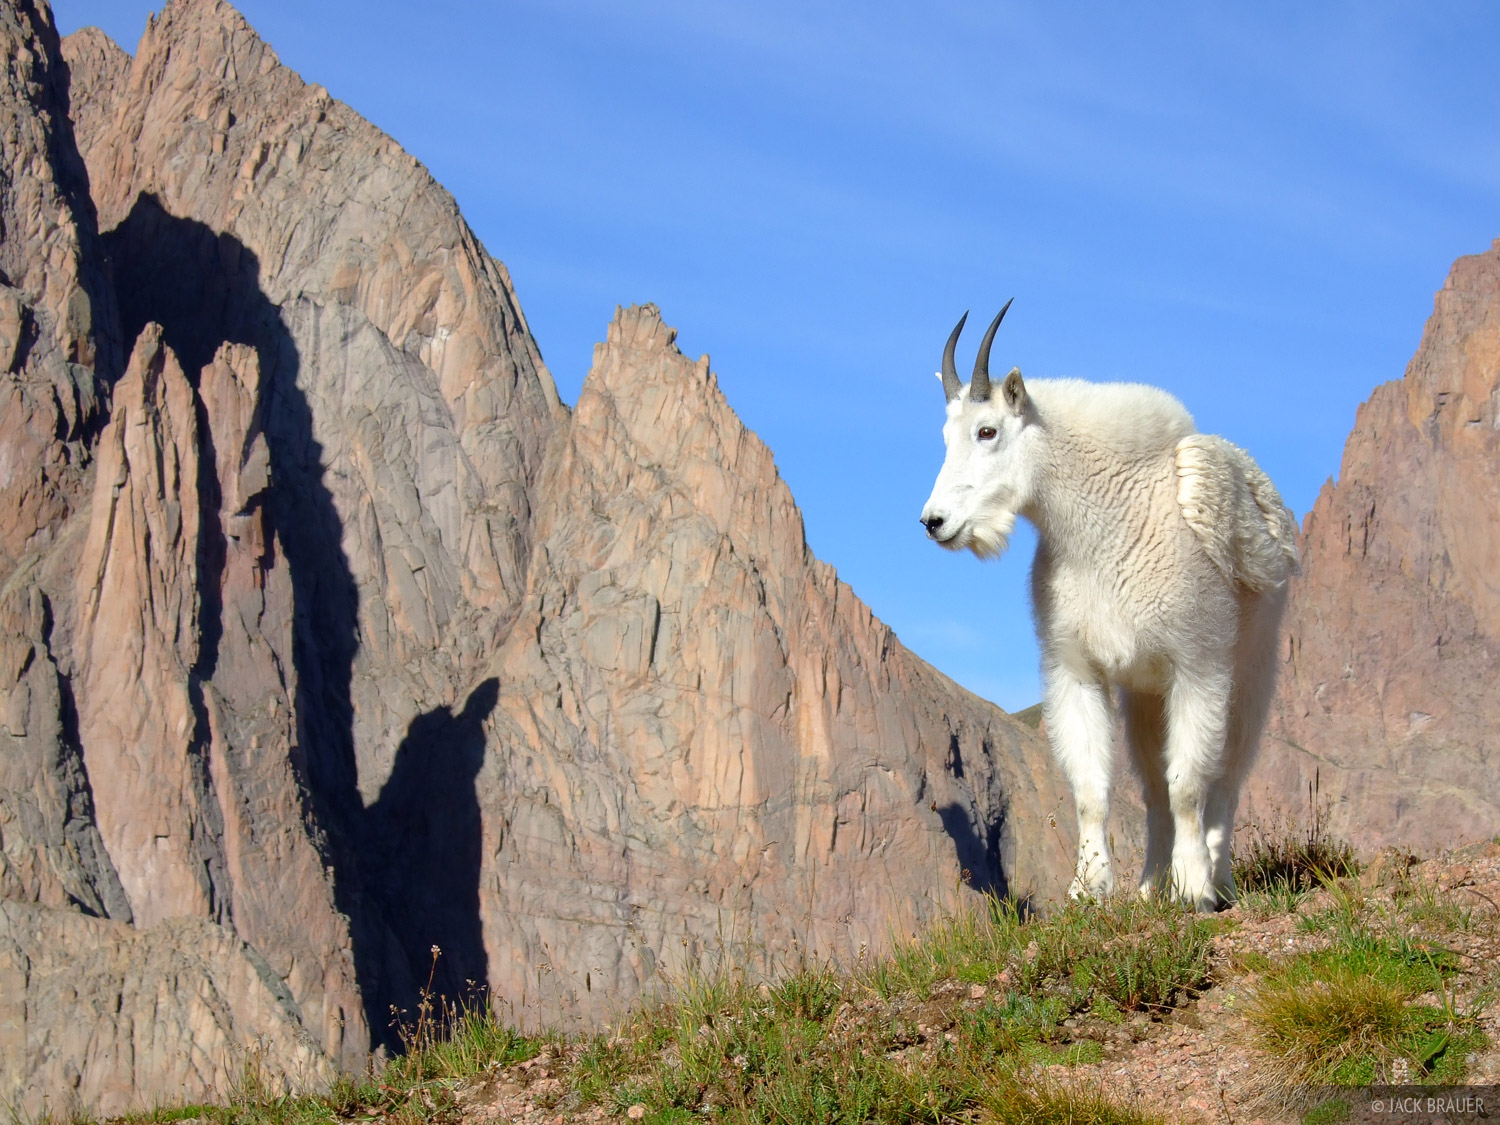 Mountain goat, Needle Mountains, Weminuche Wilderness, Colorado, photo